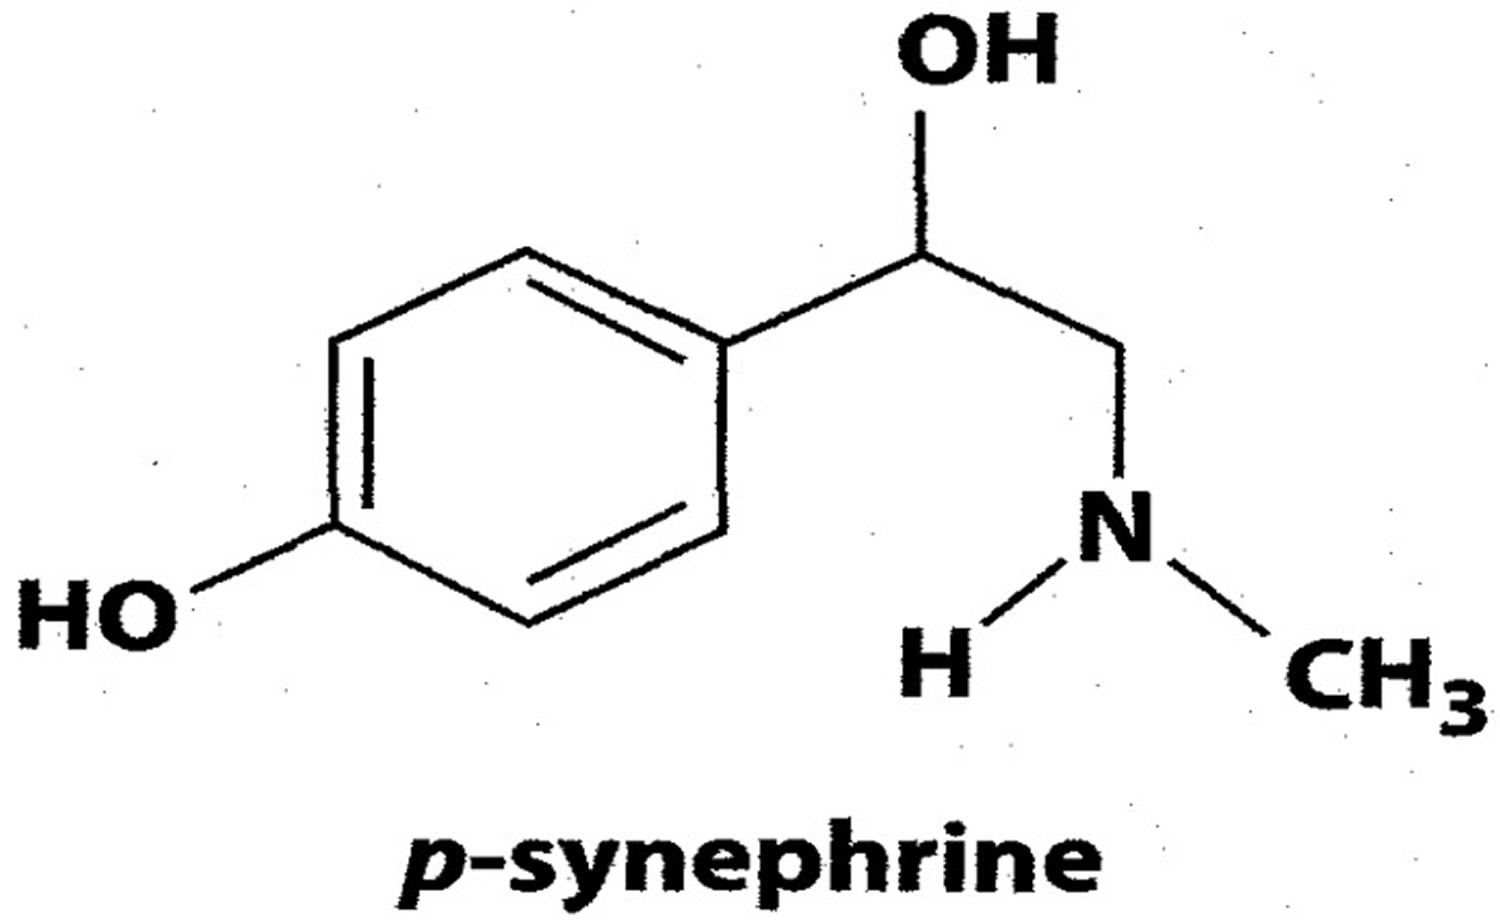 Chemical structure of p-synephrine